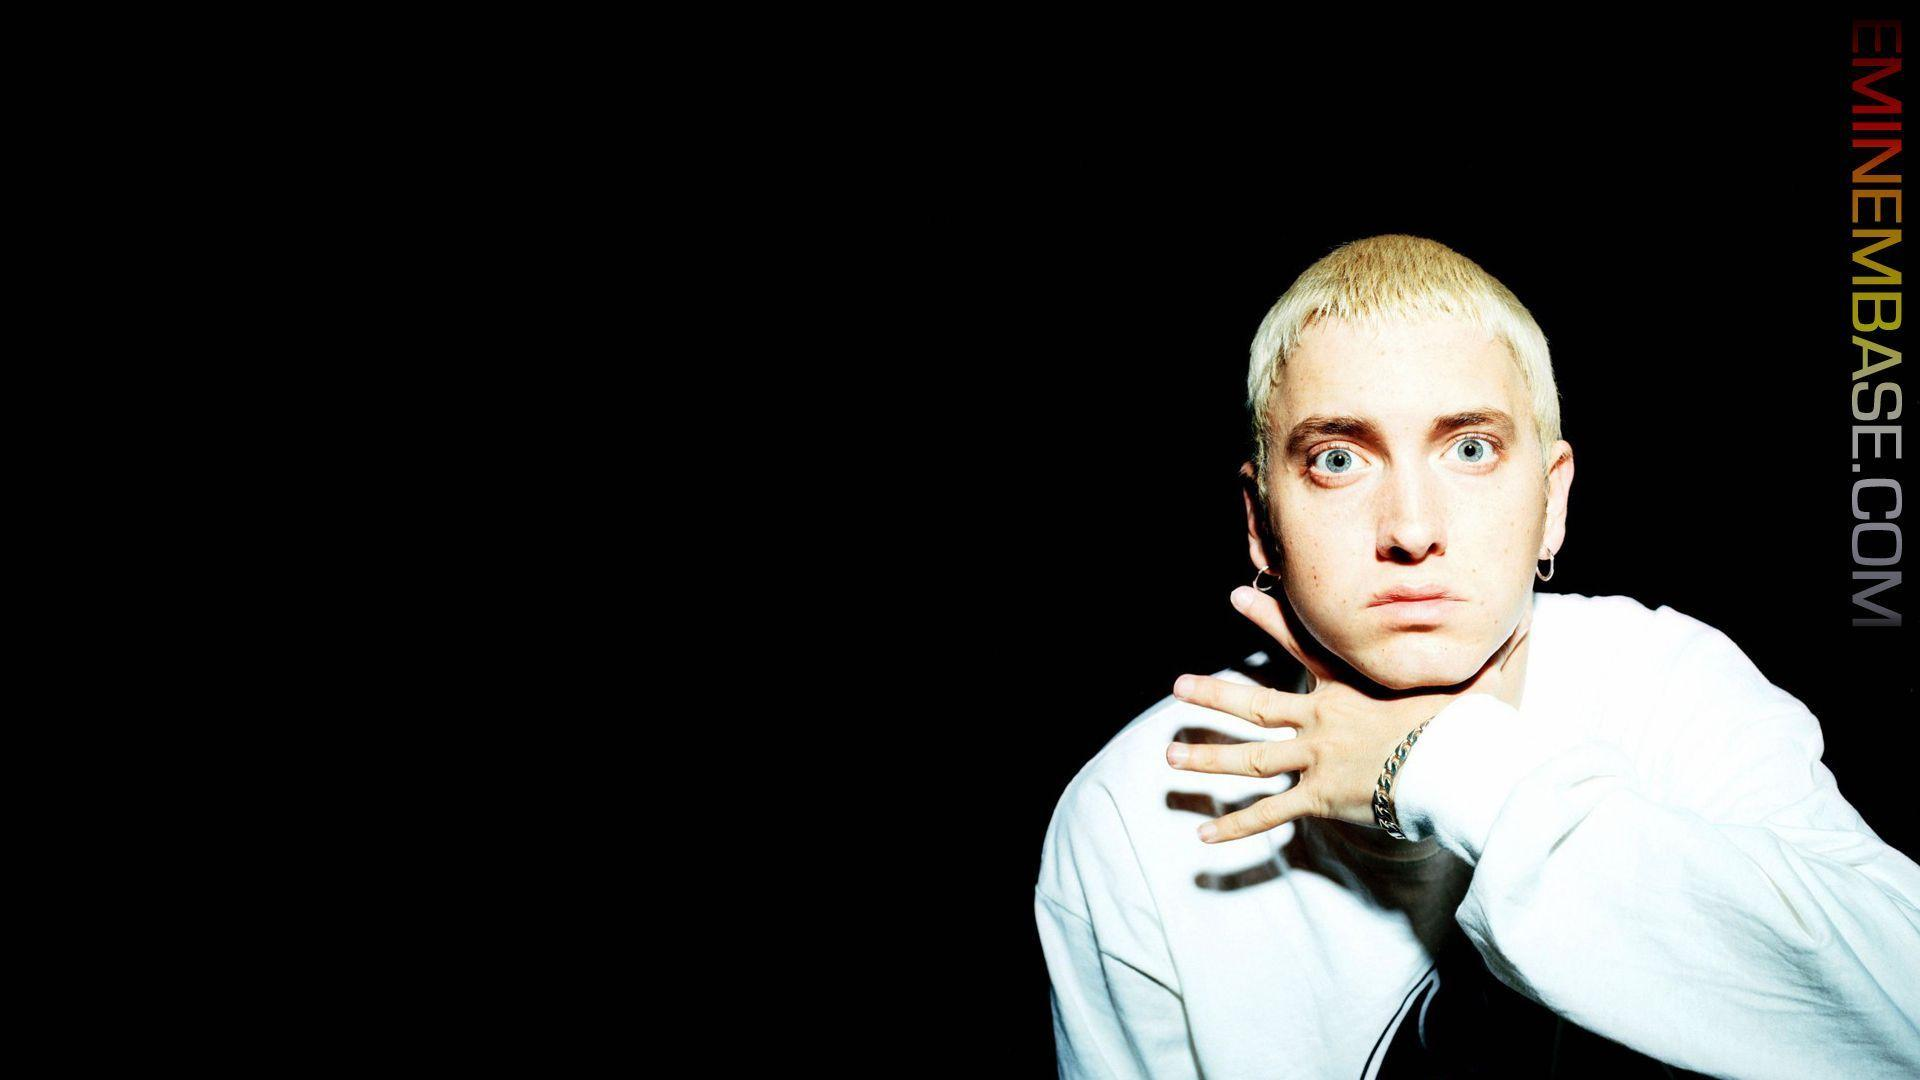 eminem wallpapers - photo #18